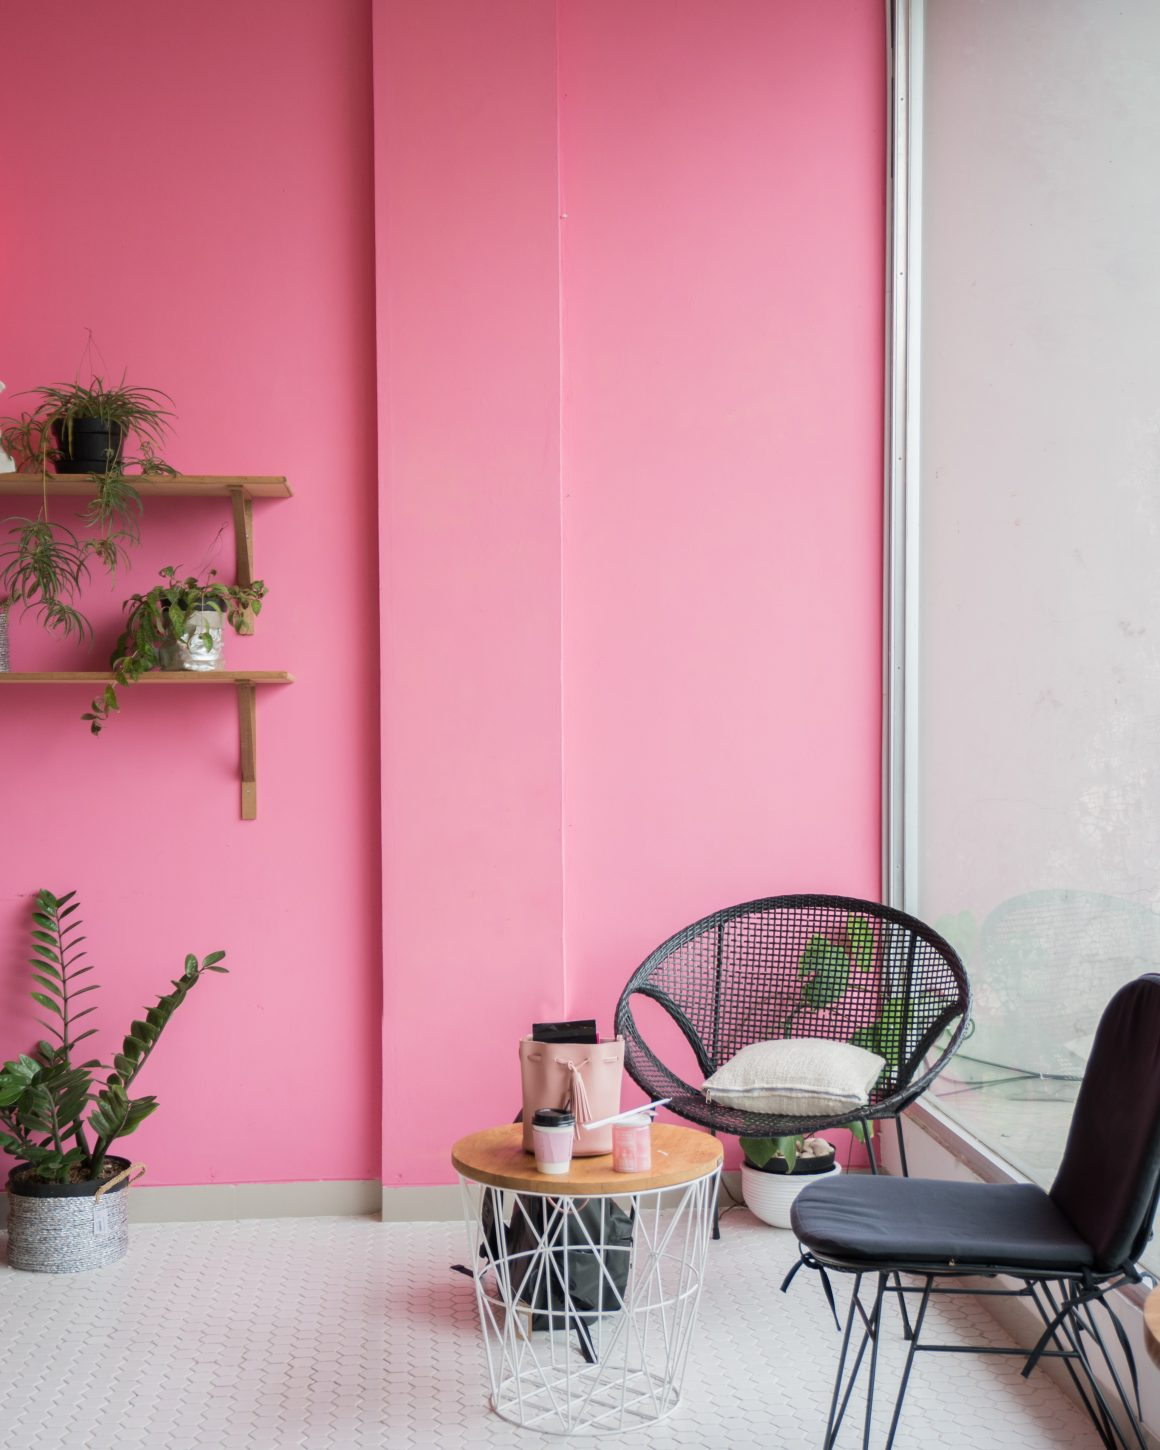 Minimalism tips for healthier living